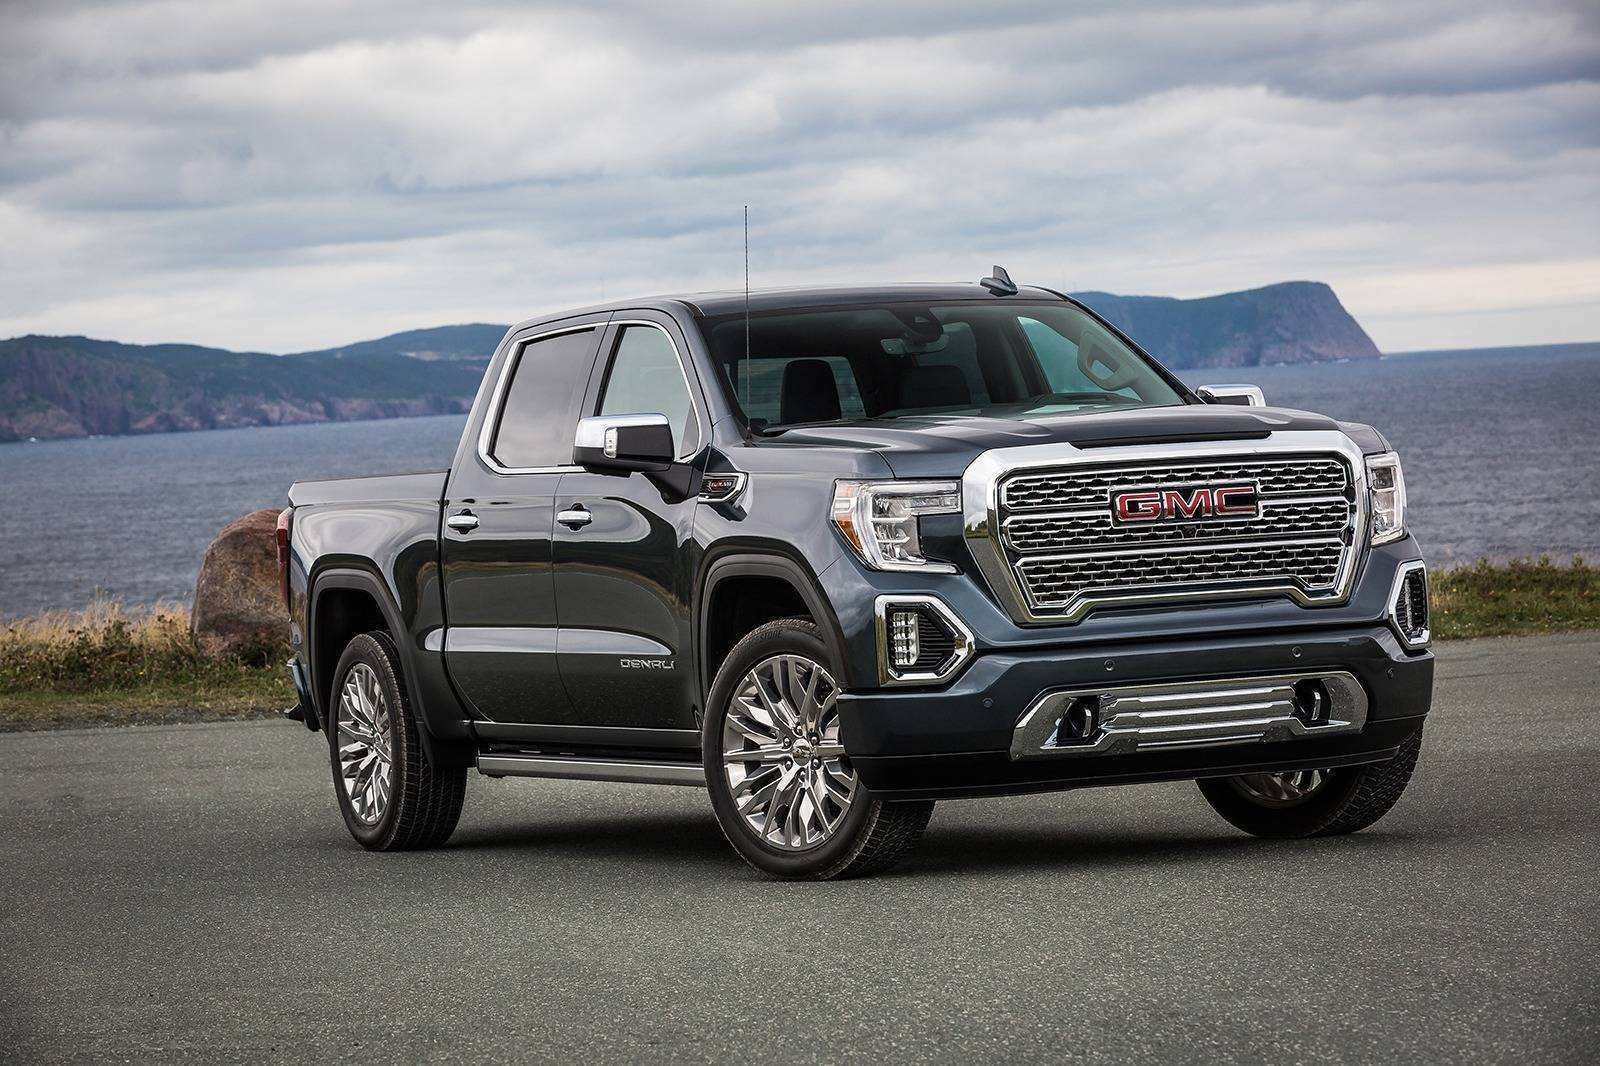 59 Gallery of The Gmc 2019 Video Review And Price Concept by The Gmc 2019 Video Review And Price